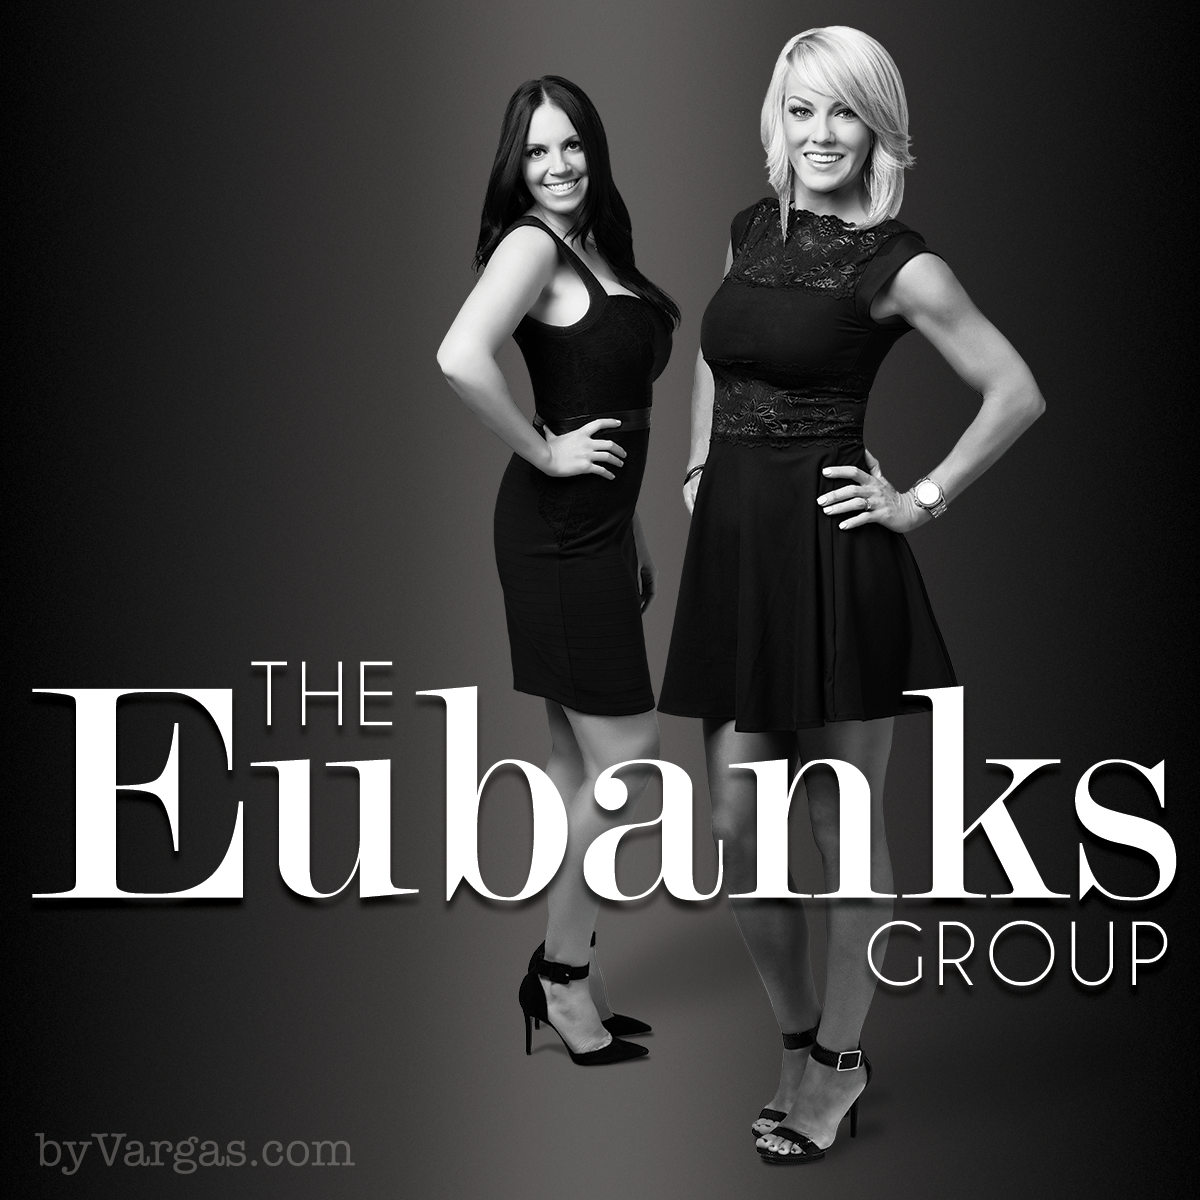 Eubanks-Group-Design-2.png